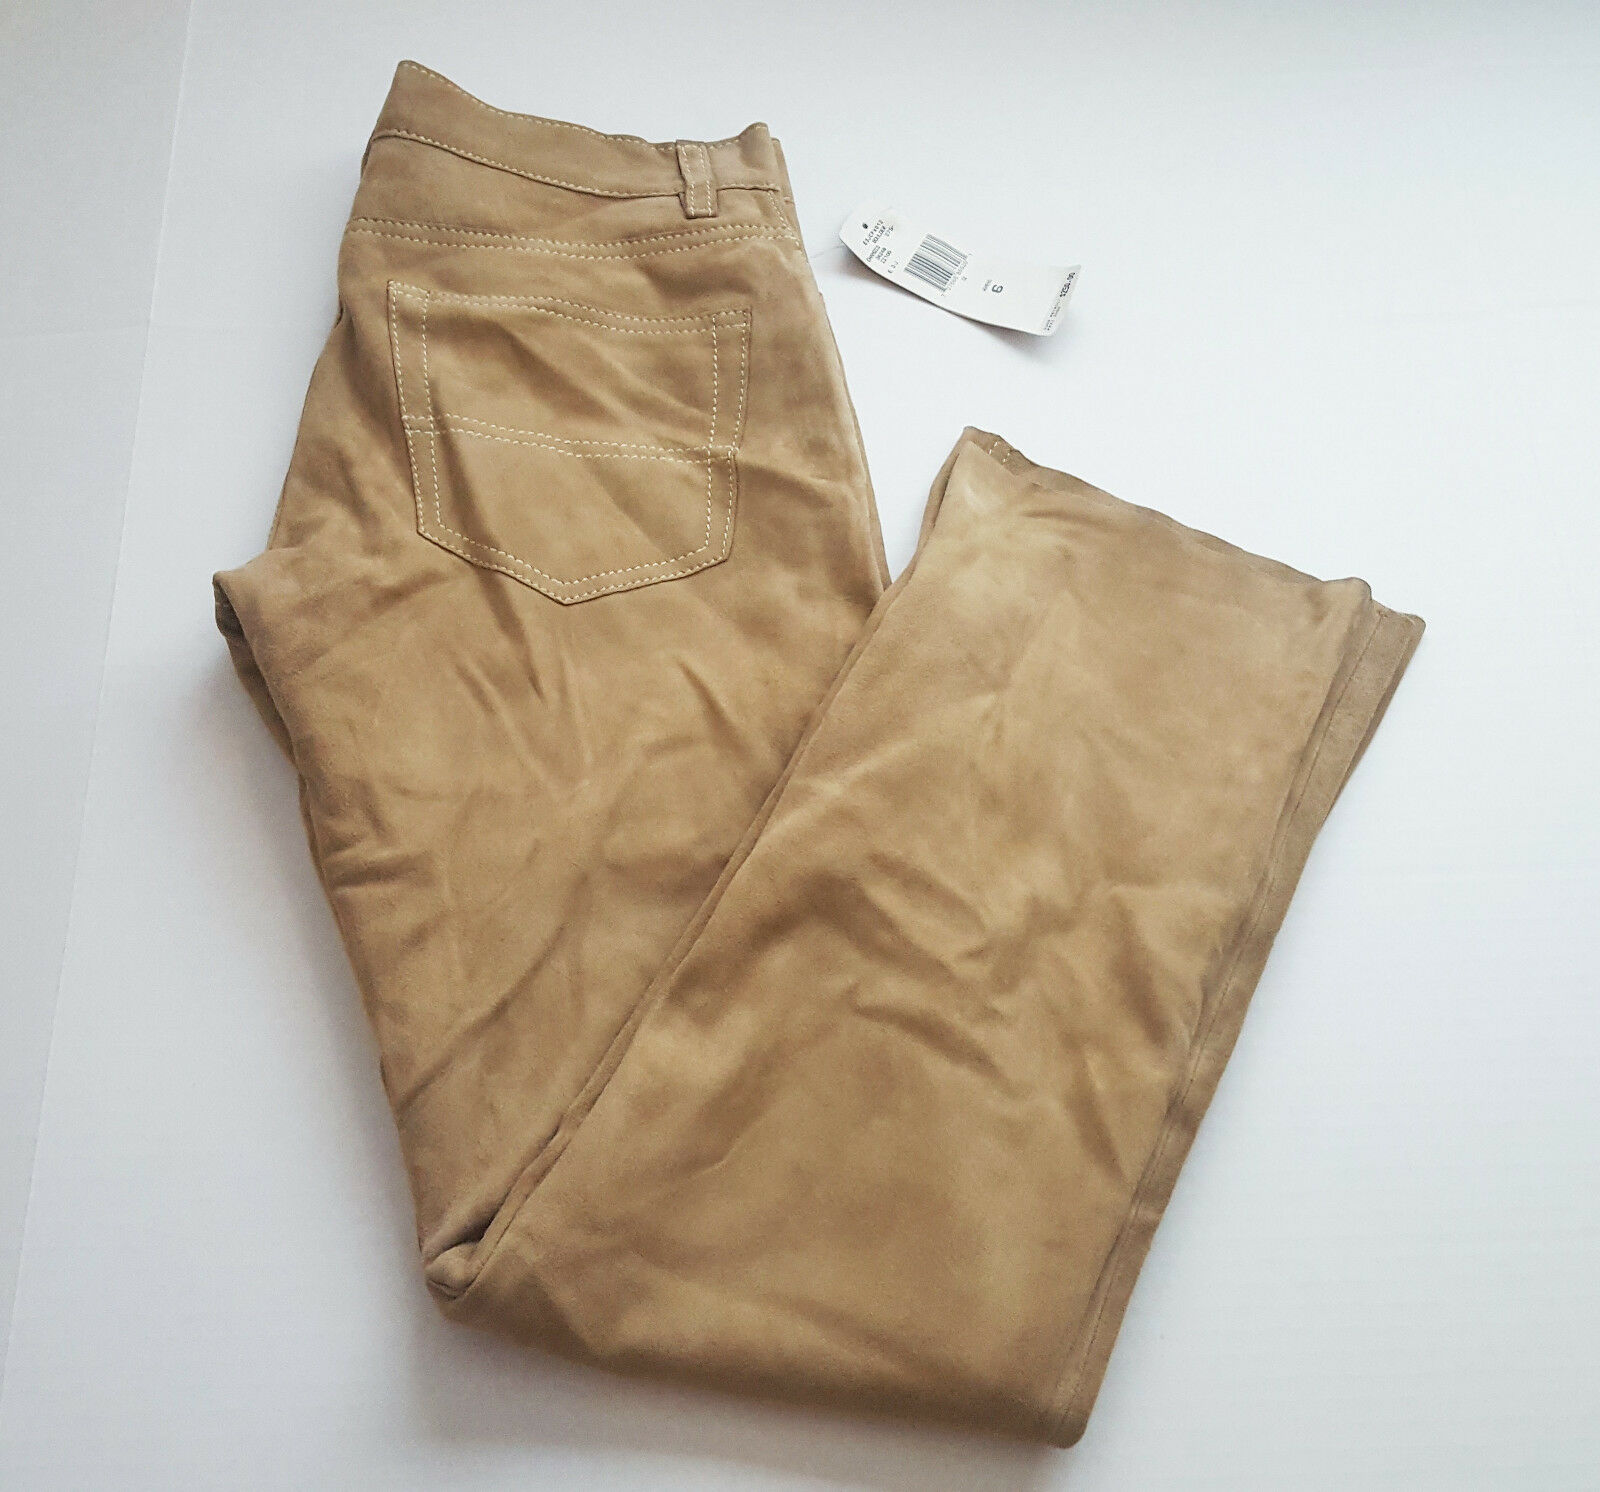 Polo Jeans Co Ralph Lauren Size 6 Chamois Leather Brown Beige Pants NWD D46